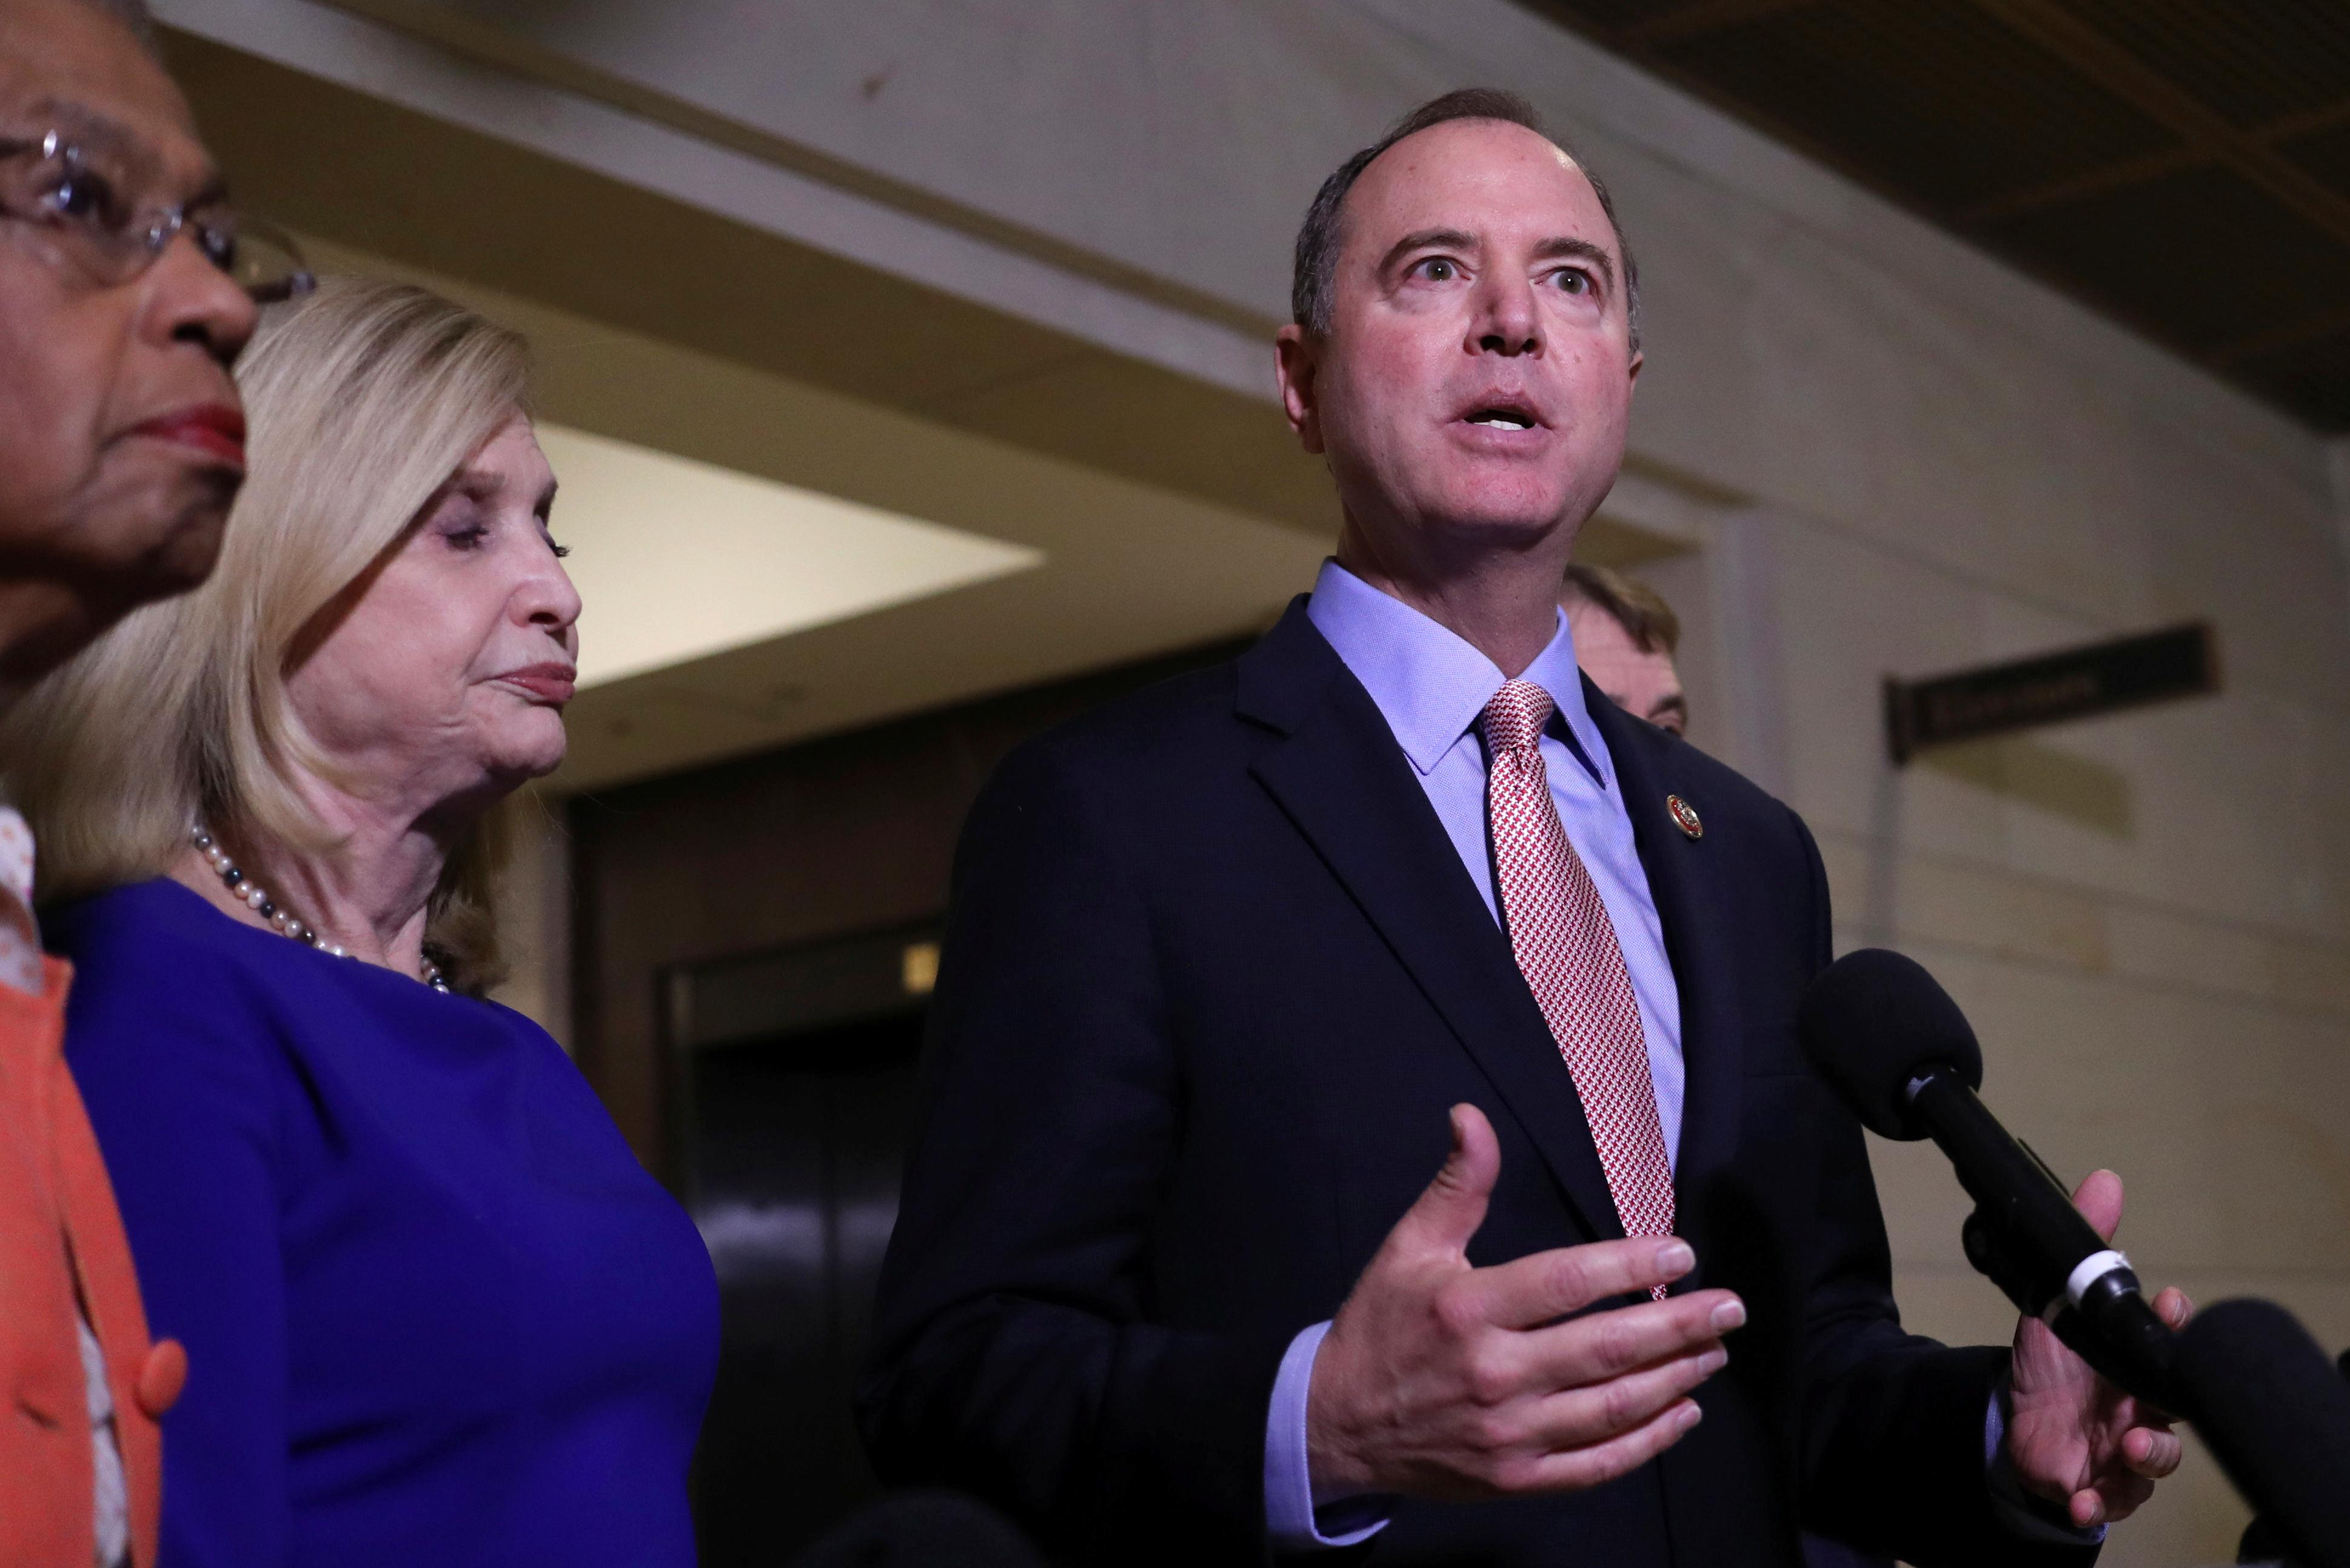 Schiff: Impeachment hearings no place for conspiracy or targeting...